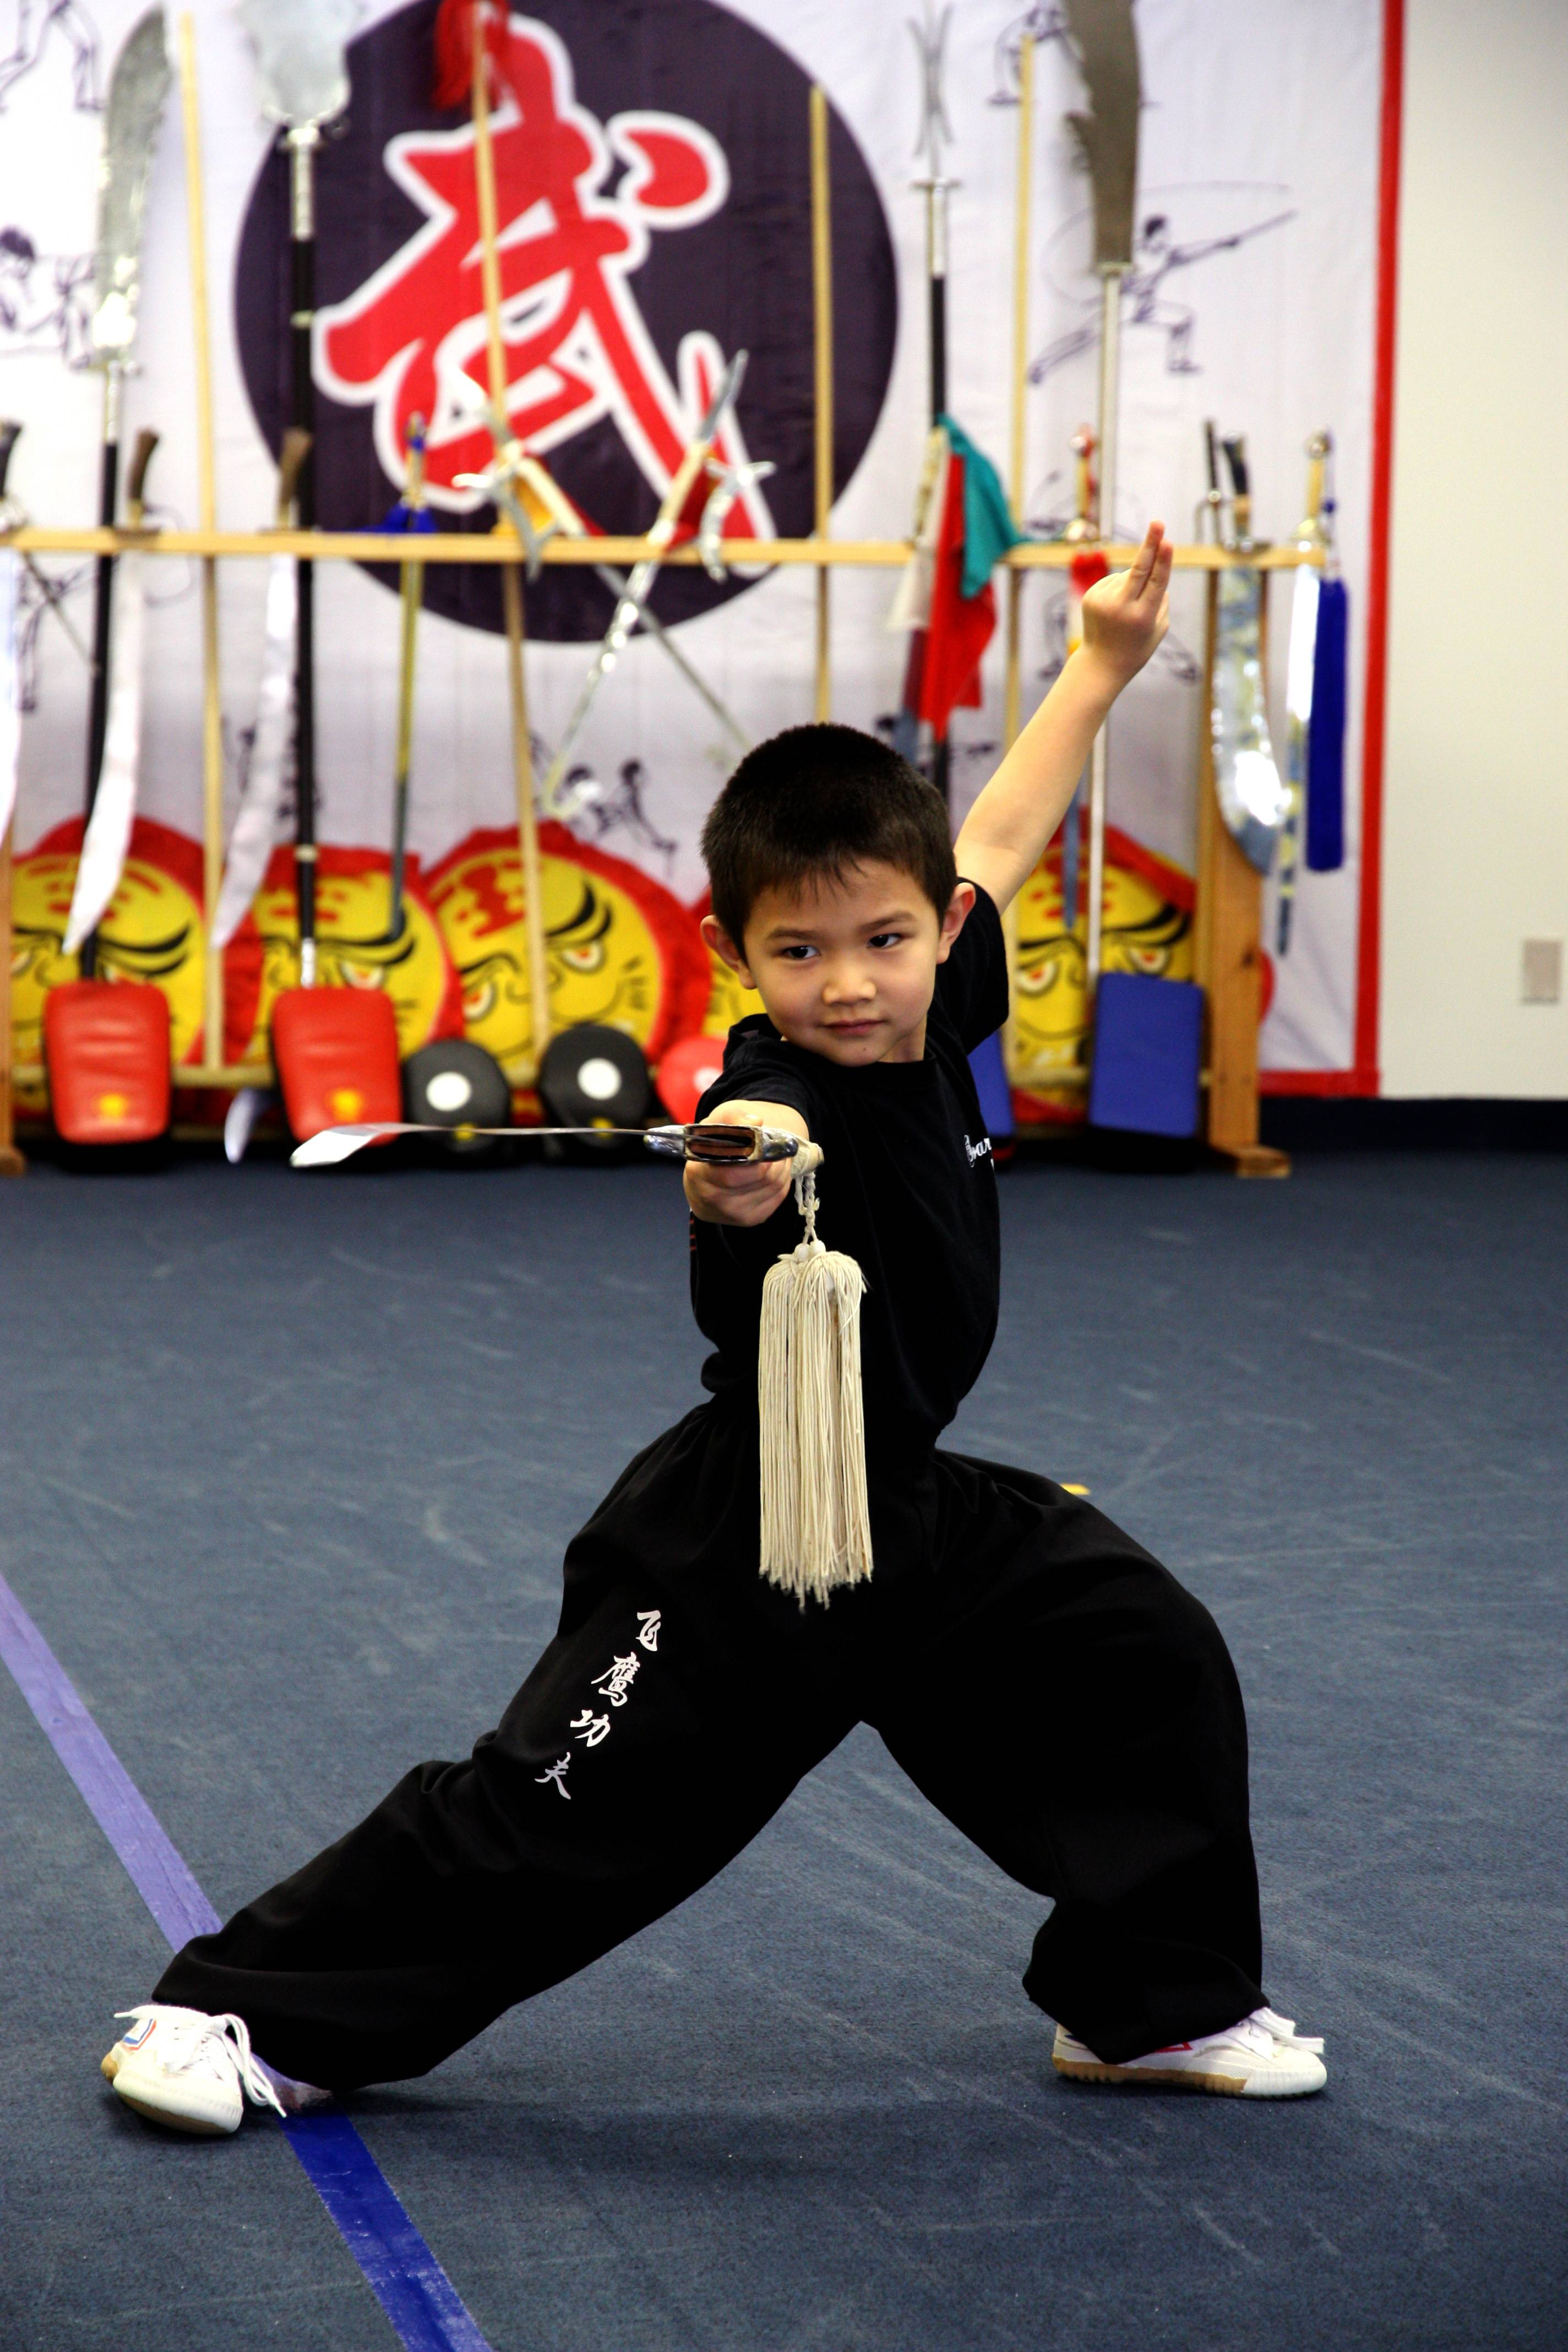 Soaring Eagle Kung Fu School, a premier Kung Fu School in Palatine, offers free martial art classes for kids (new students only), teaching traditional Chinese Kung Fu every Thursday 6pm-6:50pm until August 30. These basic skills will help children to build strength, develop focus, self-discipline and confidence.